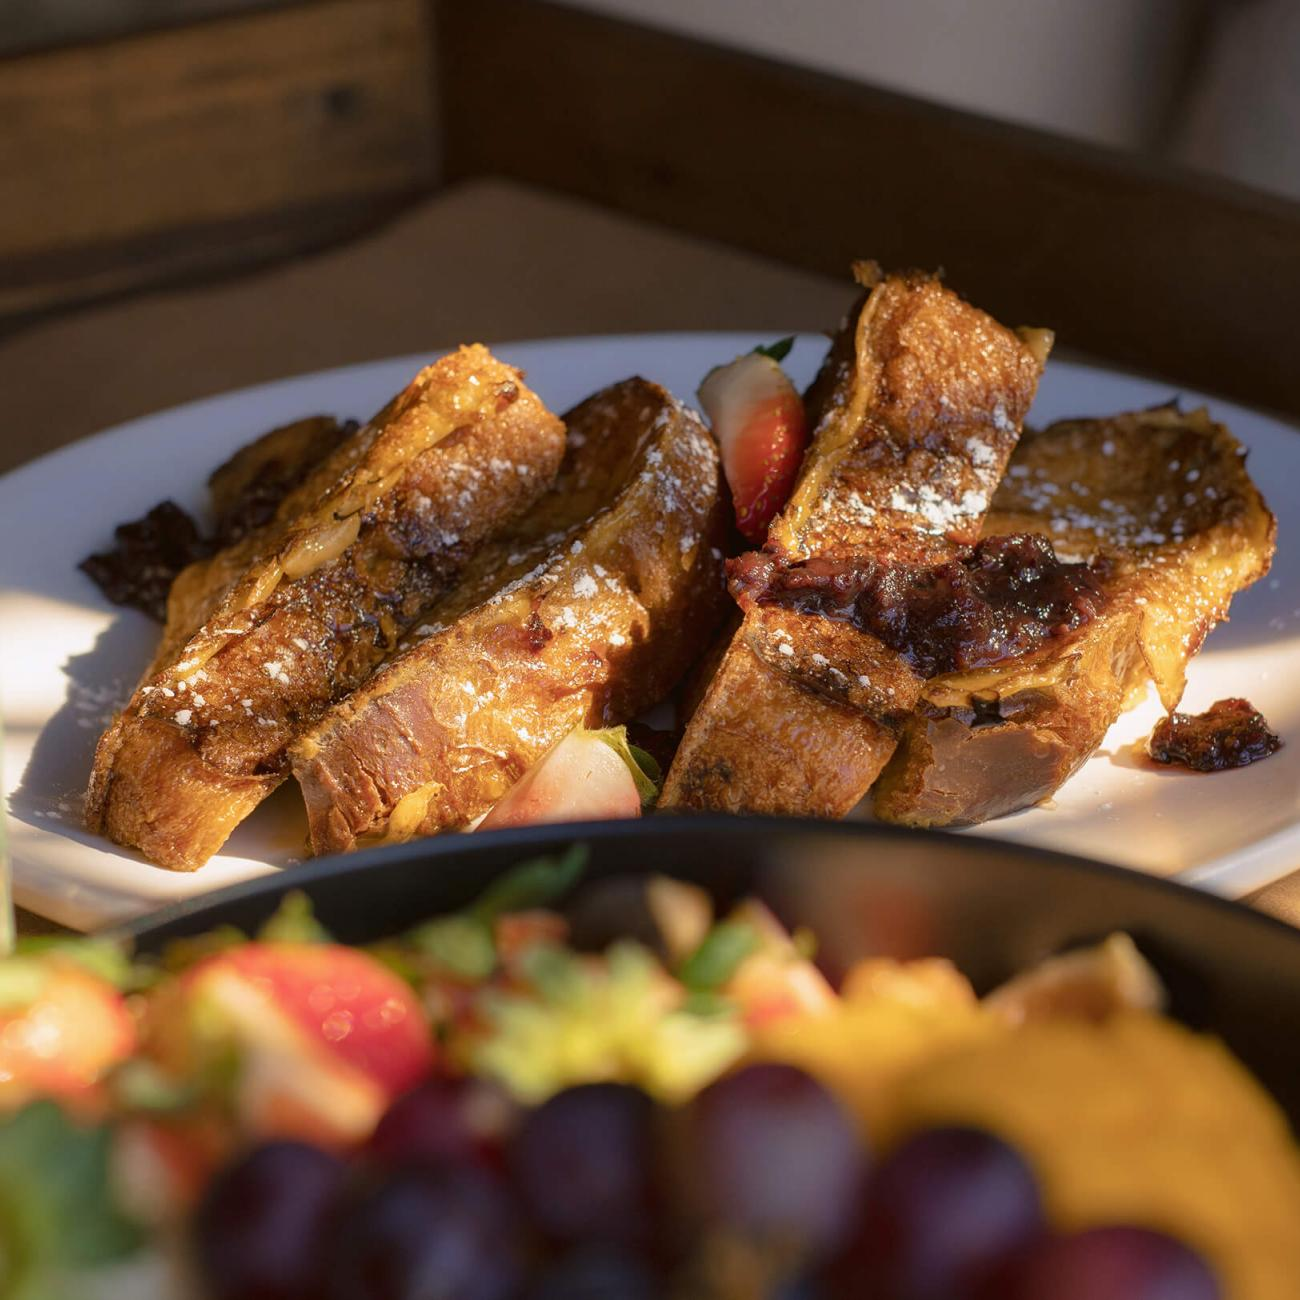 A close up of french toast and fresh fruit